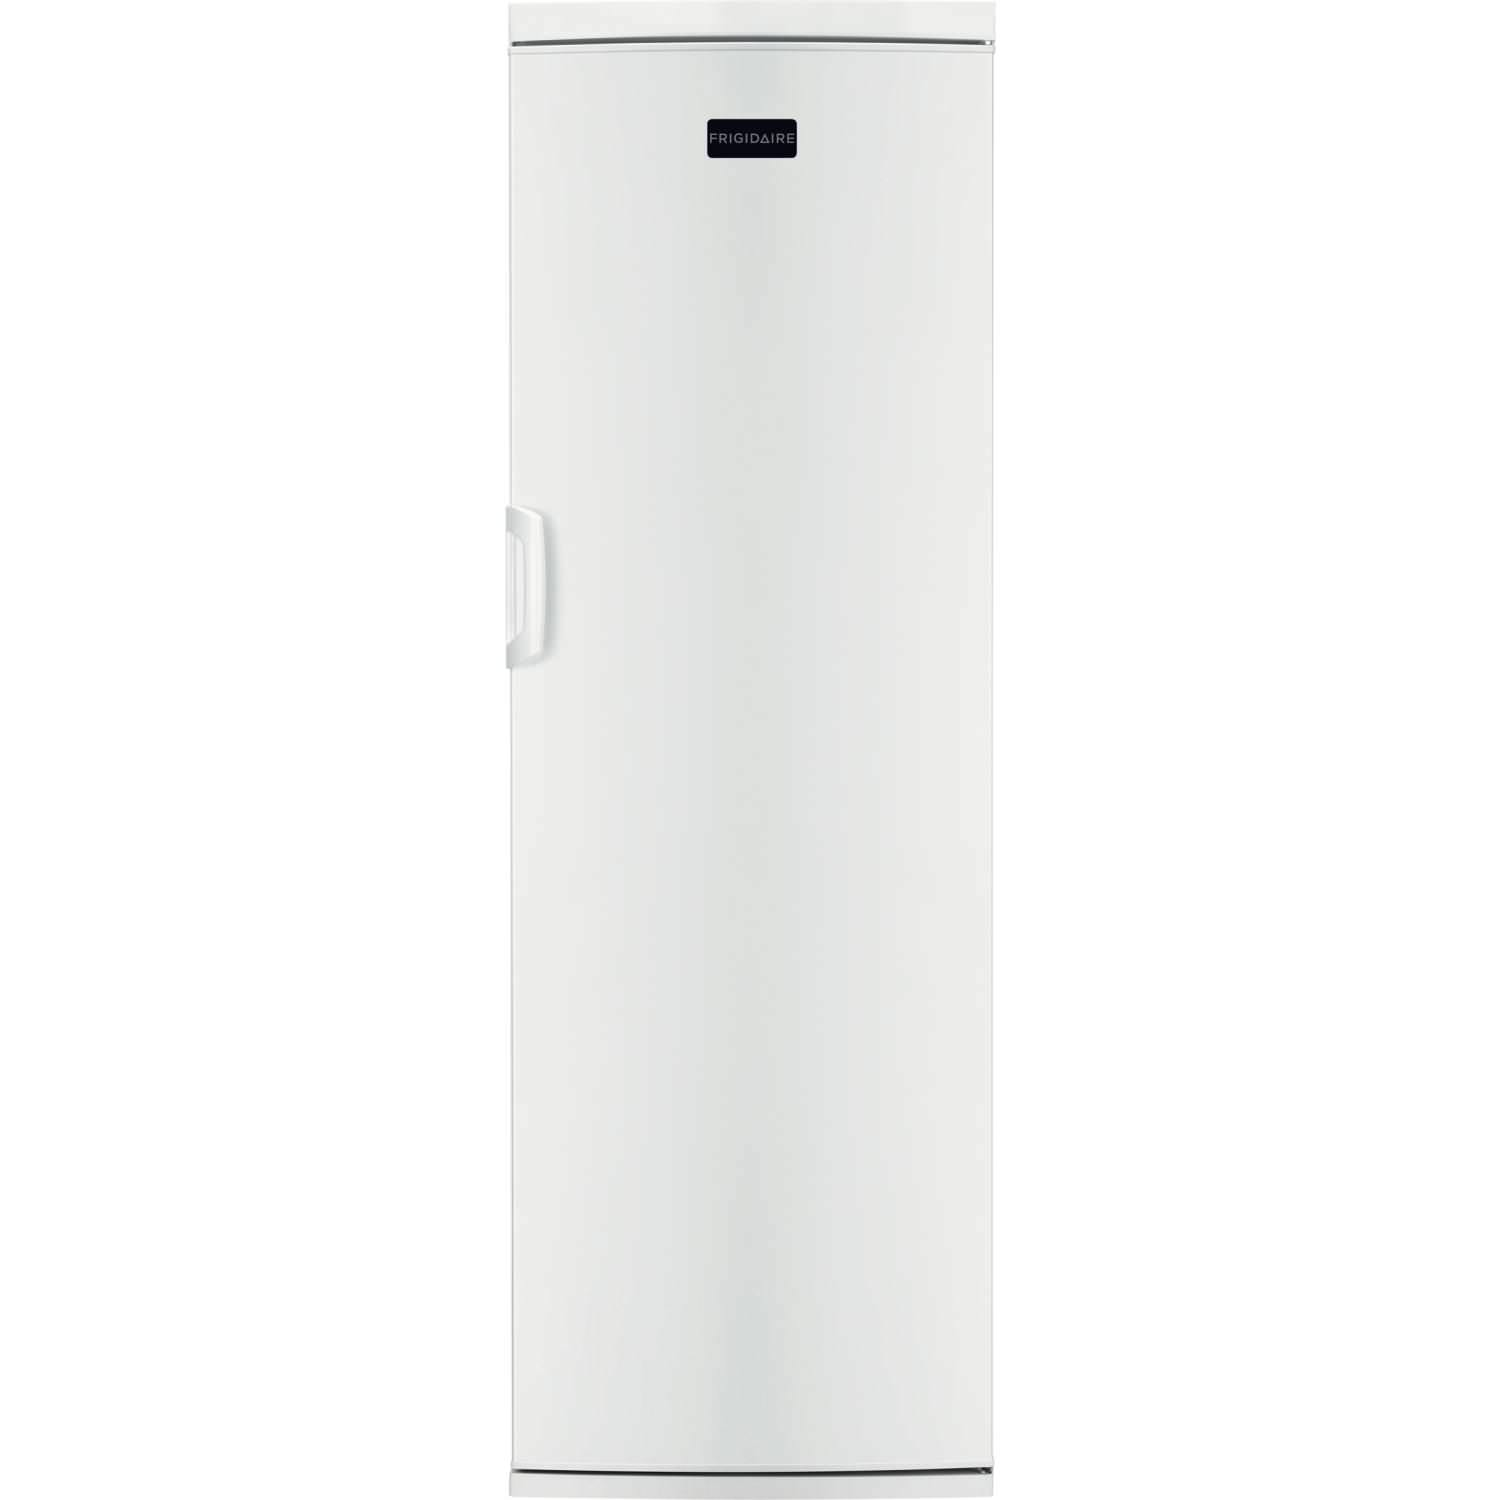 Frigidaire FRCLF185W 395 Litre Single Door Fridge